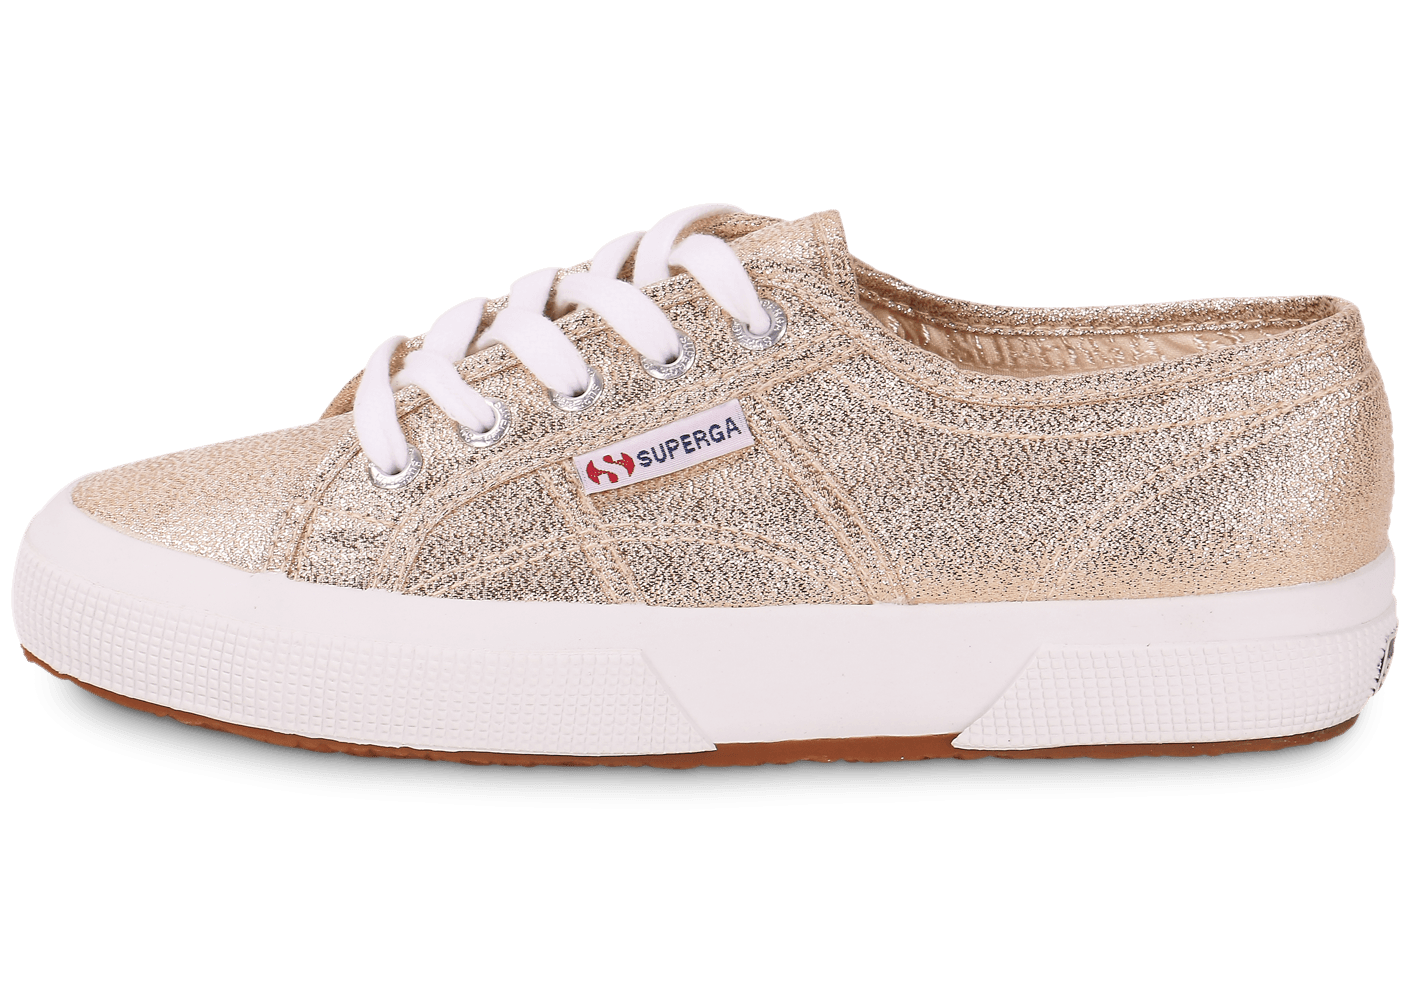 superga 2750 lamew paillettes or chaussures chaussures chausport. Black Bedroom Furniture Sets. Home Design Ideas